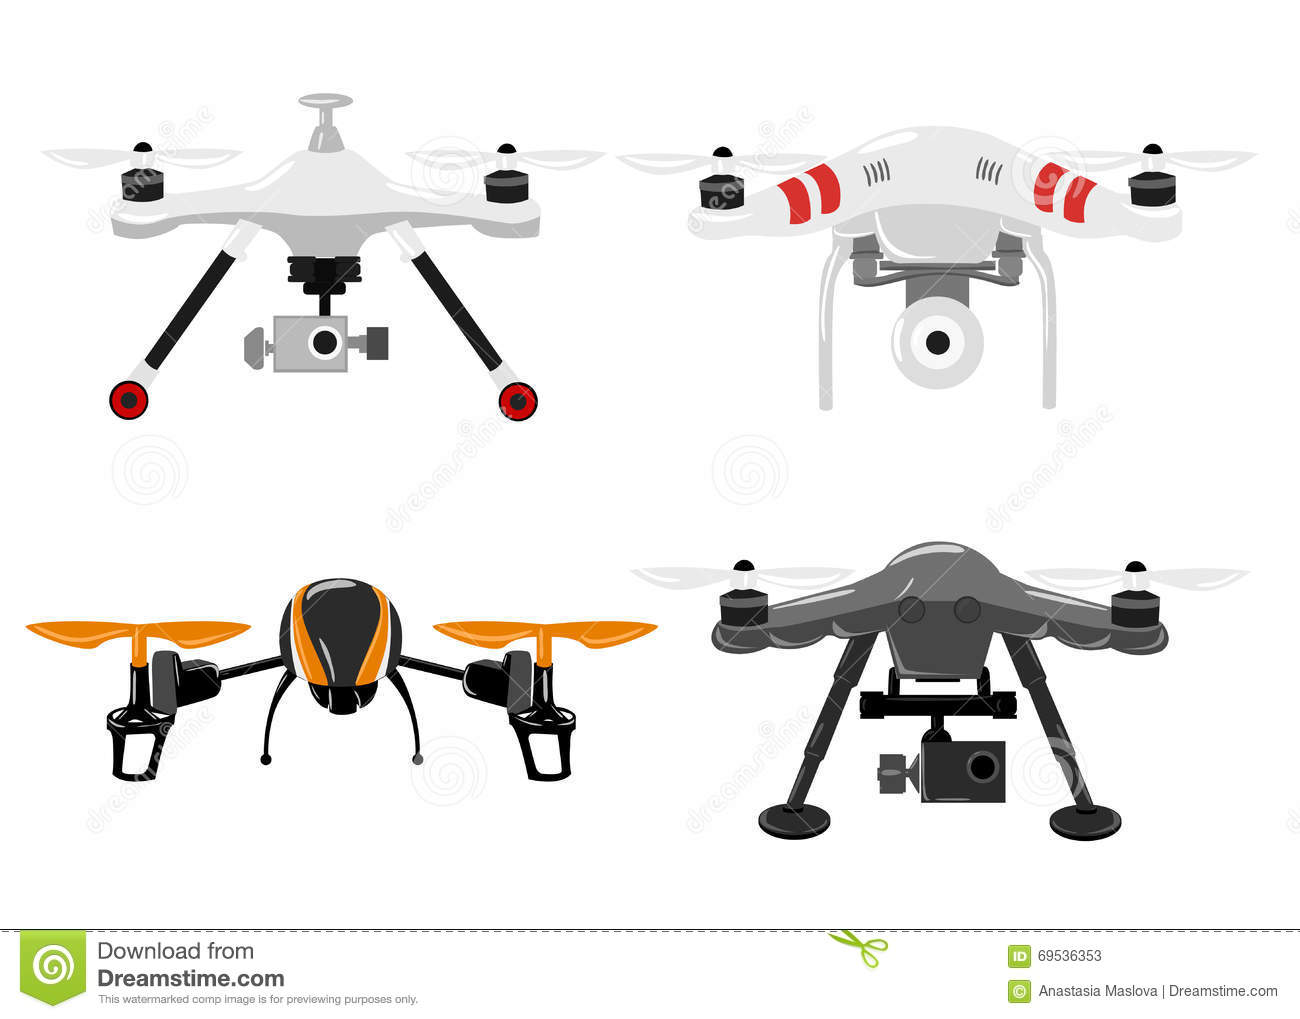 Aerial Vehicle Quadrocopter Air Drone Hovering Sketch Stock Photos